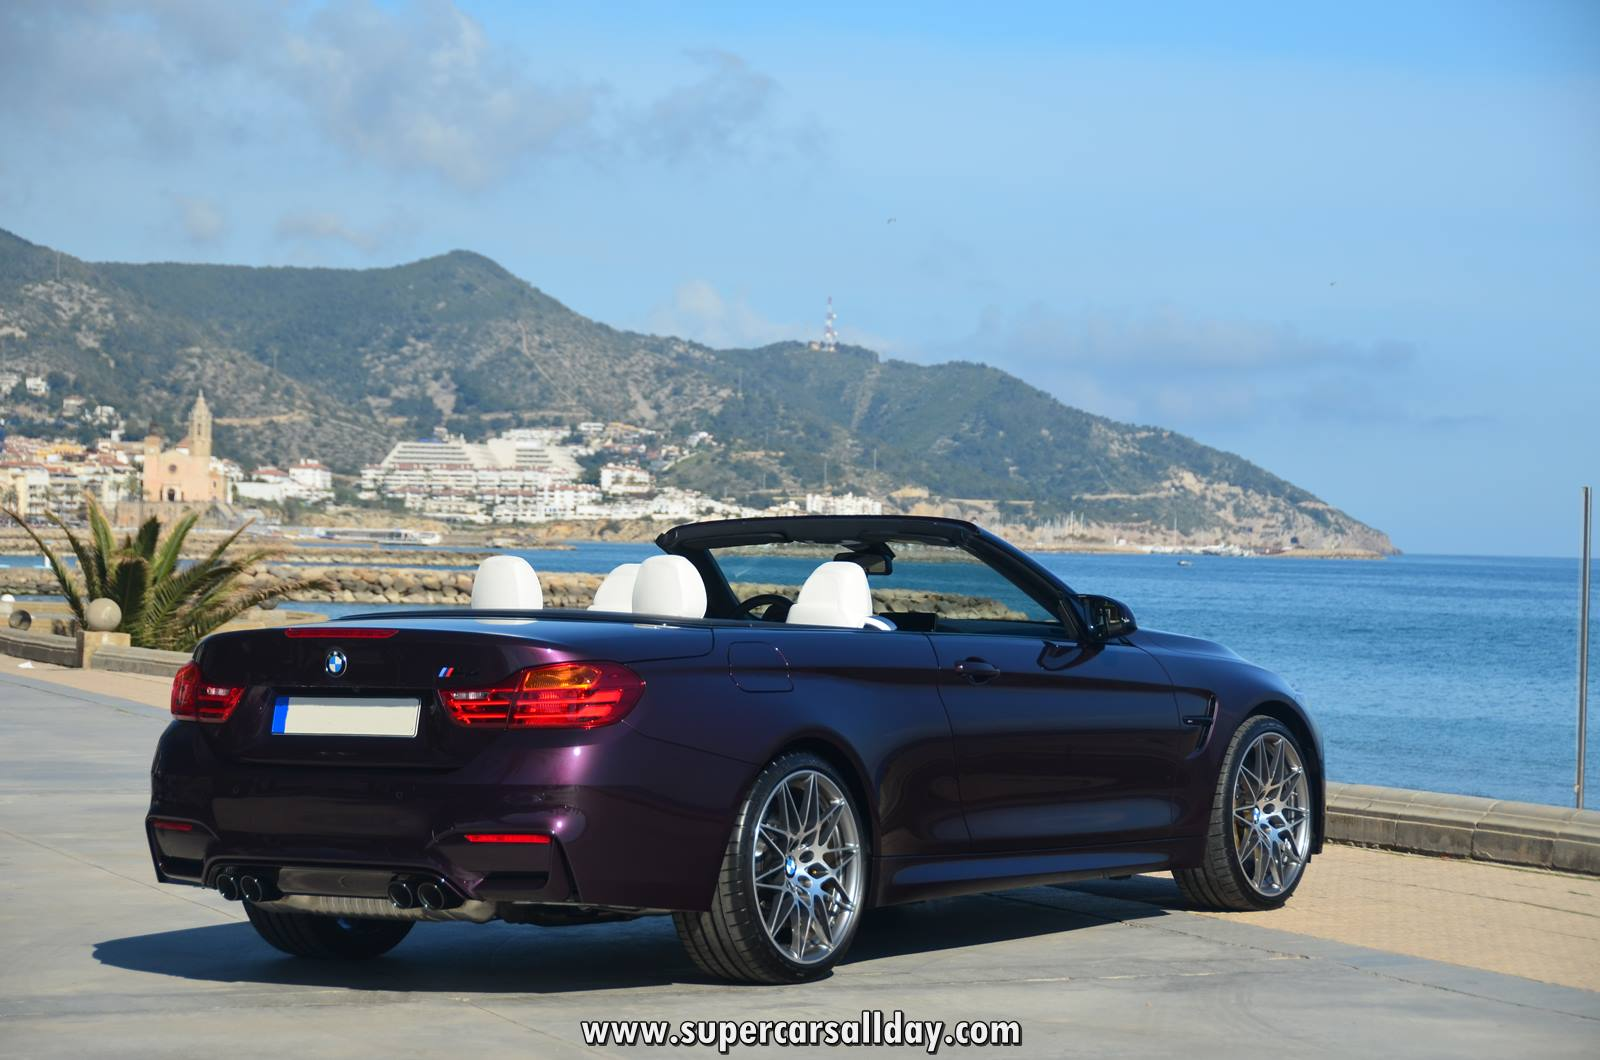 Bmw M4 Convertible Purple Silk Supercars All Day Exotic Cars Photo Car Collection